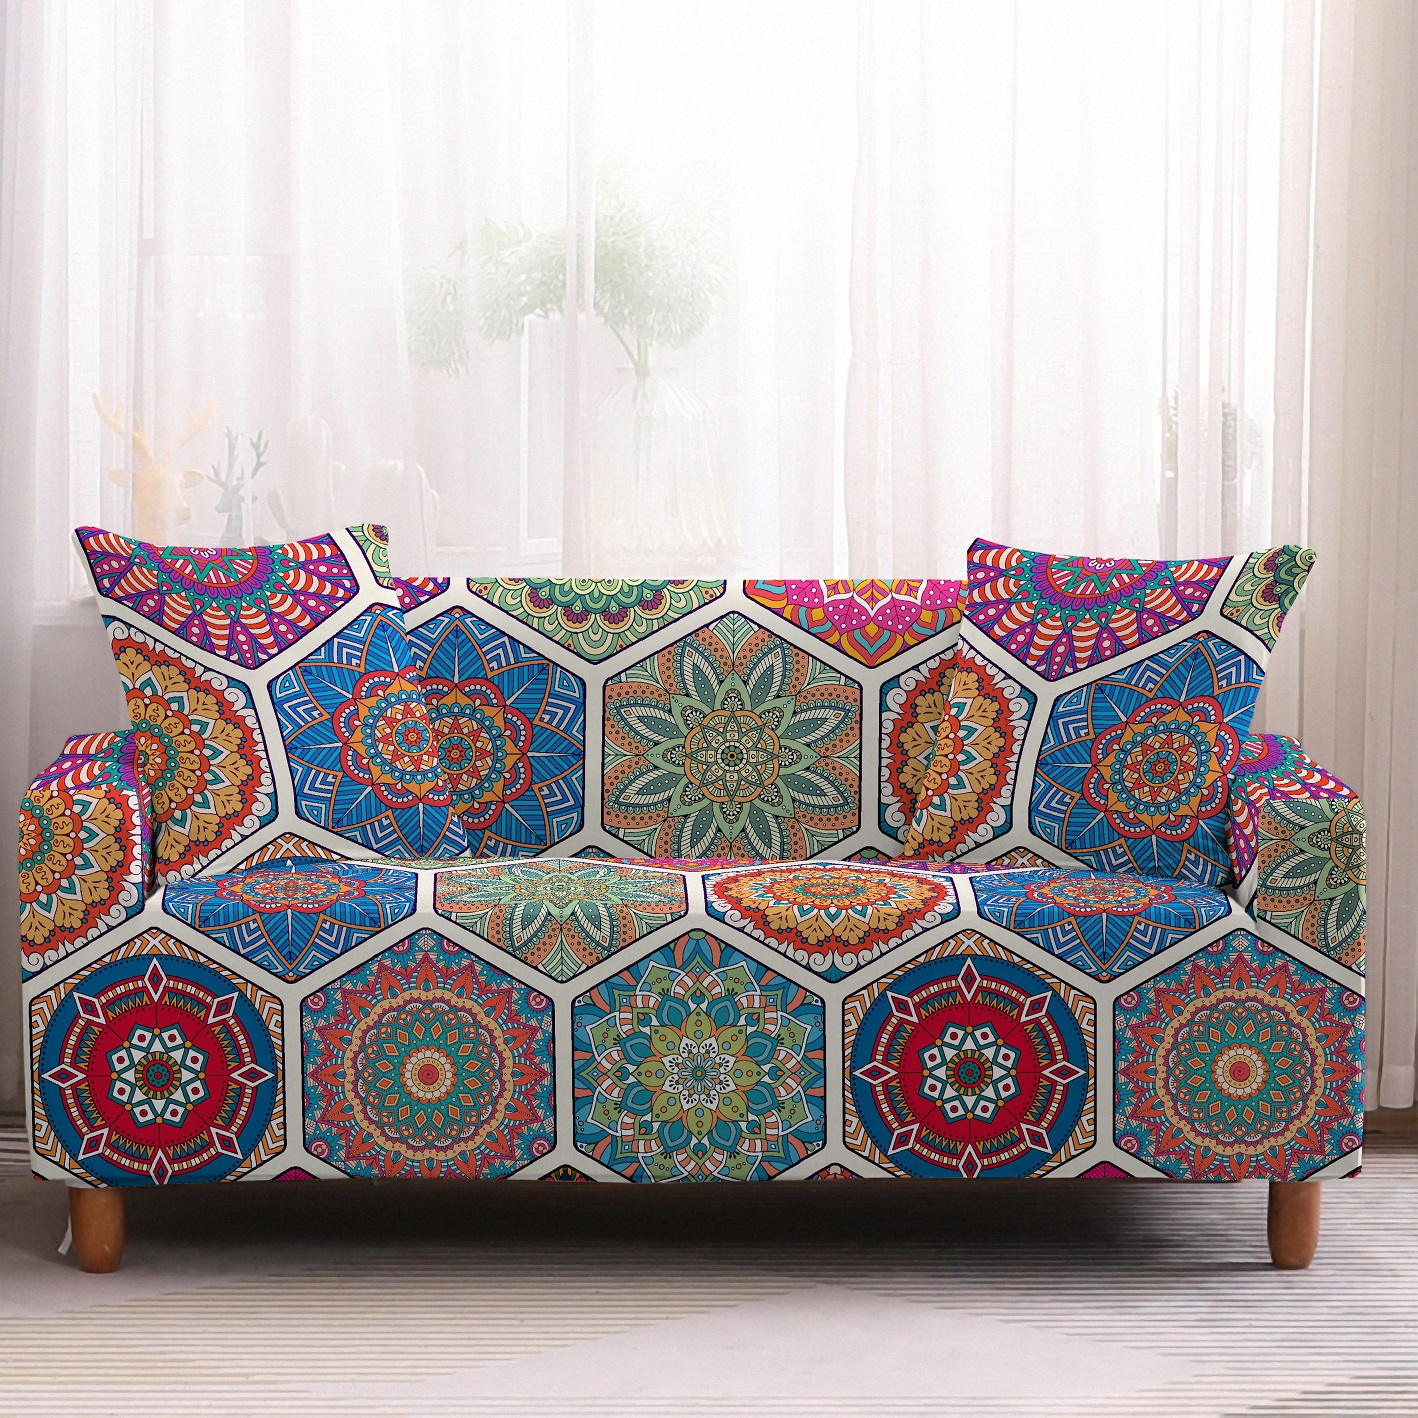 Bohemia Slipcovers Sofa Cover in Mandala Pattern to Protect Living Room Furniture from Stains and Dust 7